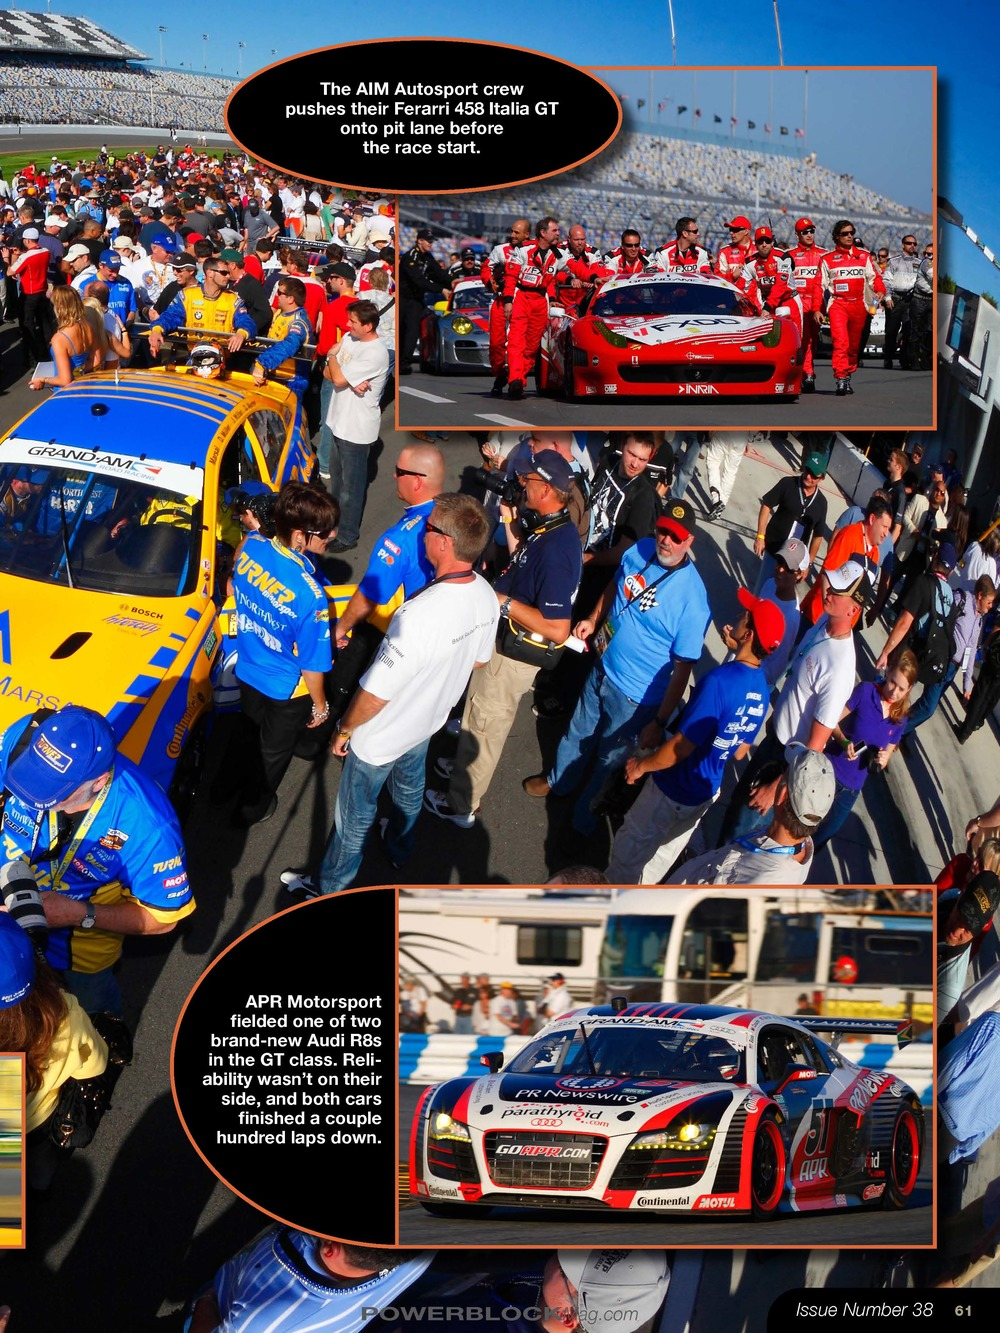 powerblockmagazine_issue38_rolex24_Page_07.jpg